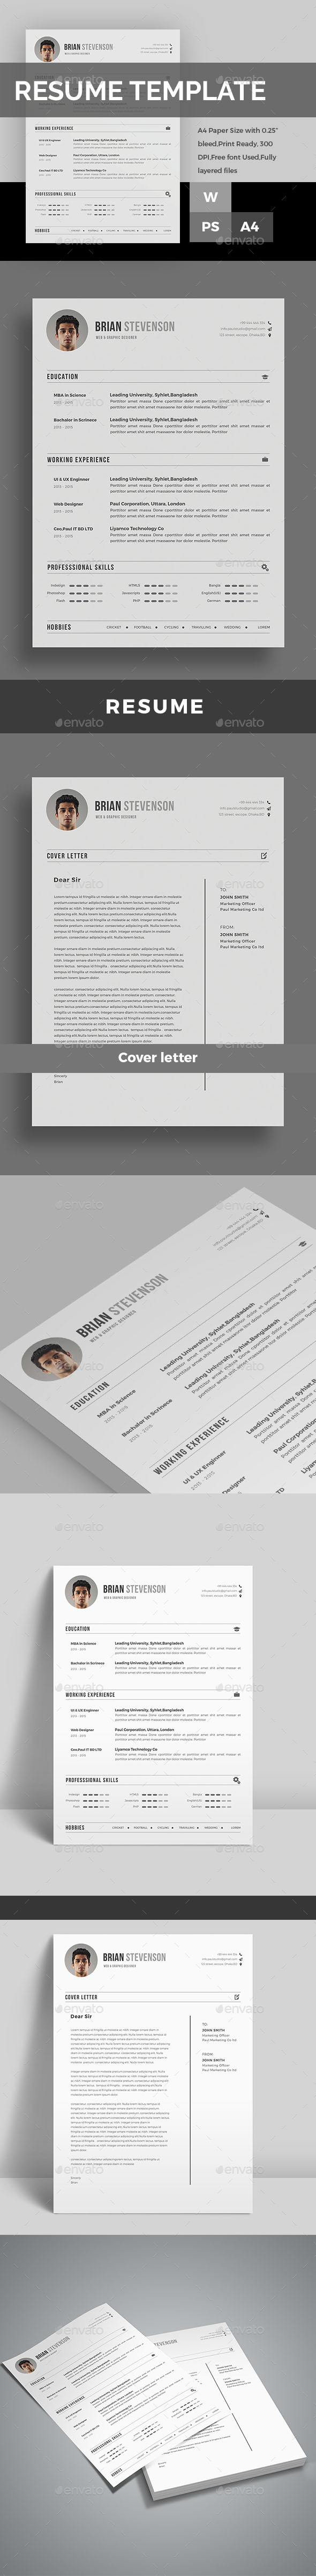 Resume A4 Template PSD, MS Word Best resume template